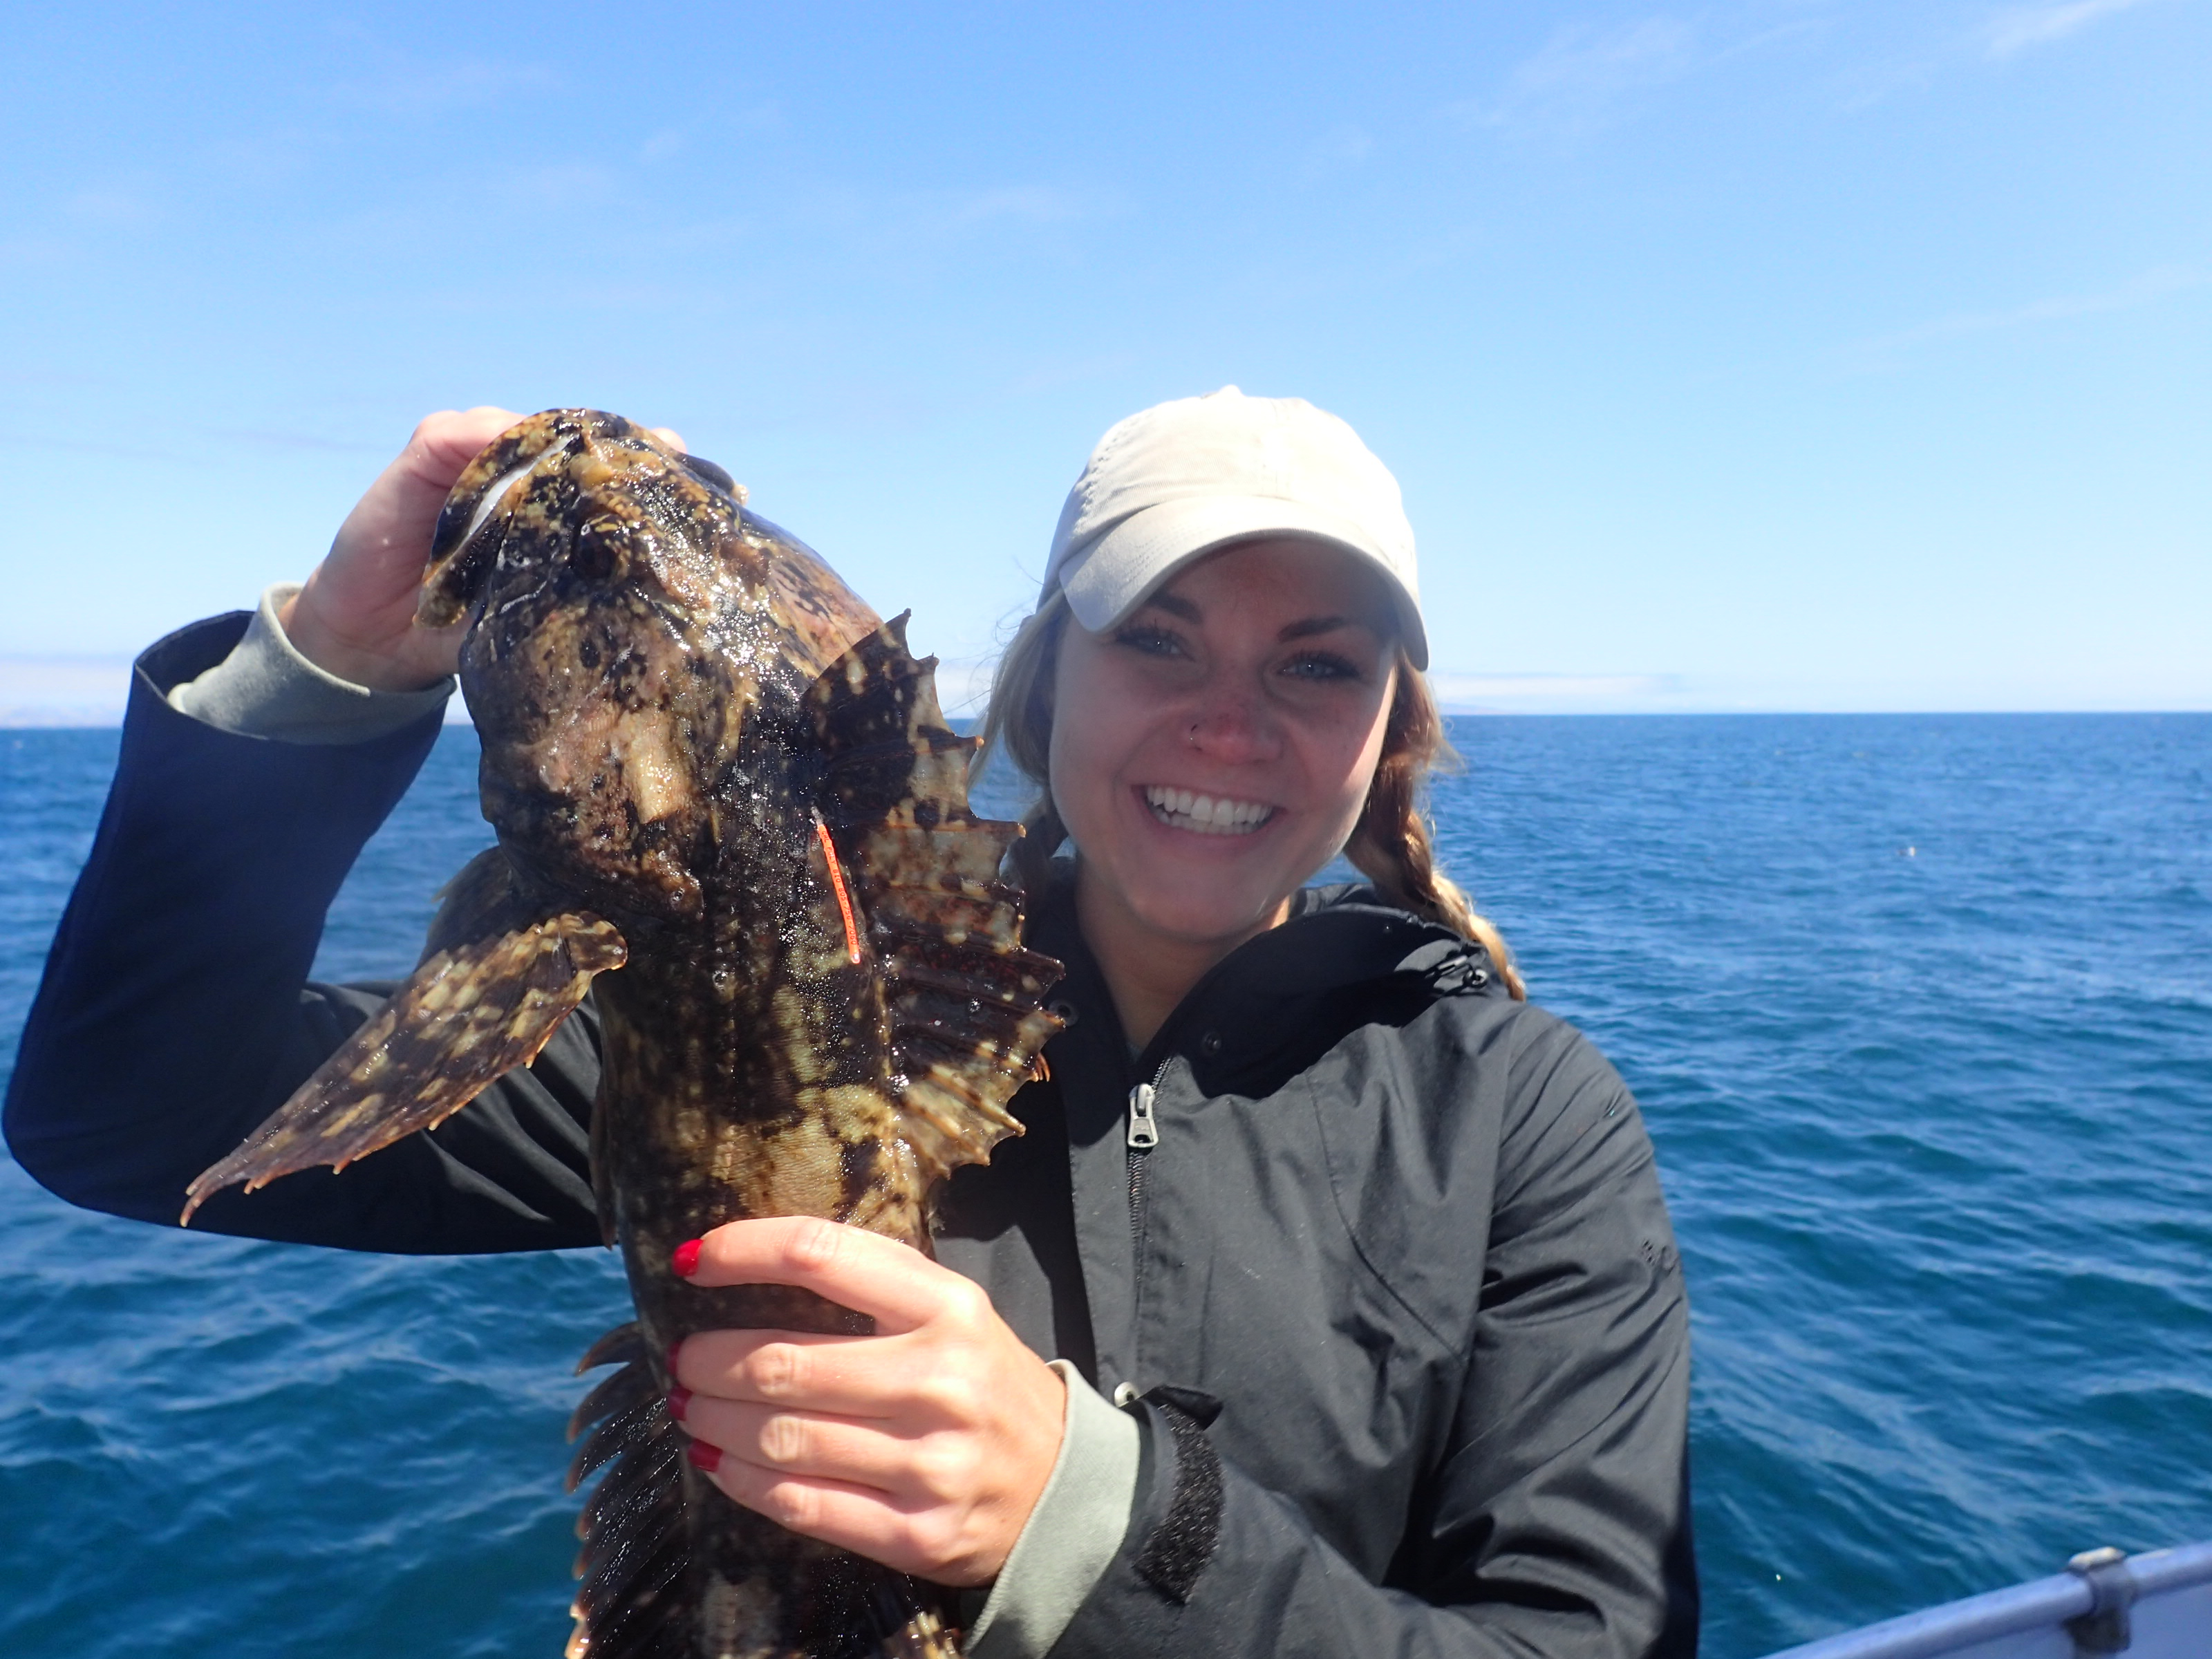 Student Lizzie Deluca excited to be measuring a gopher rockfish. Photo credit: Jennifer O'Leary